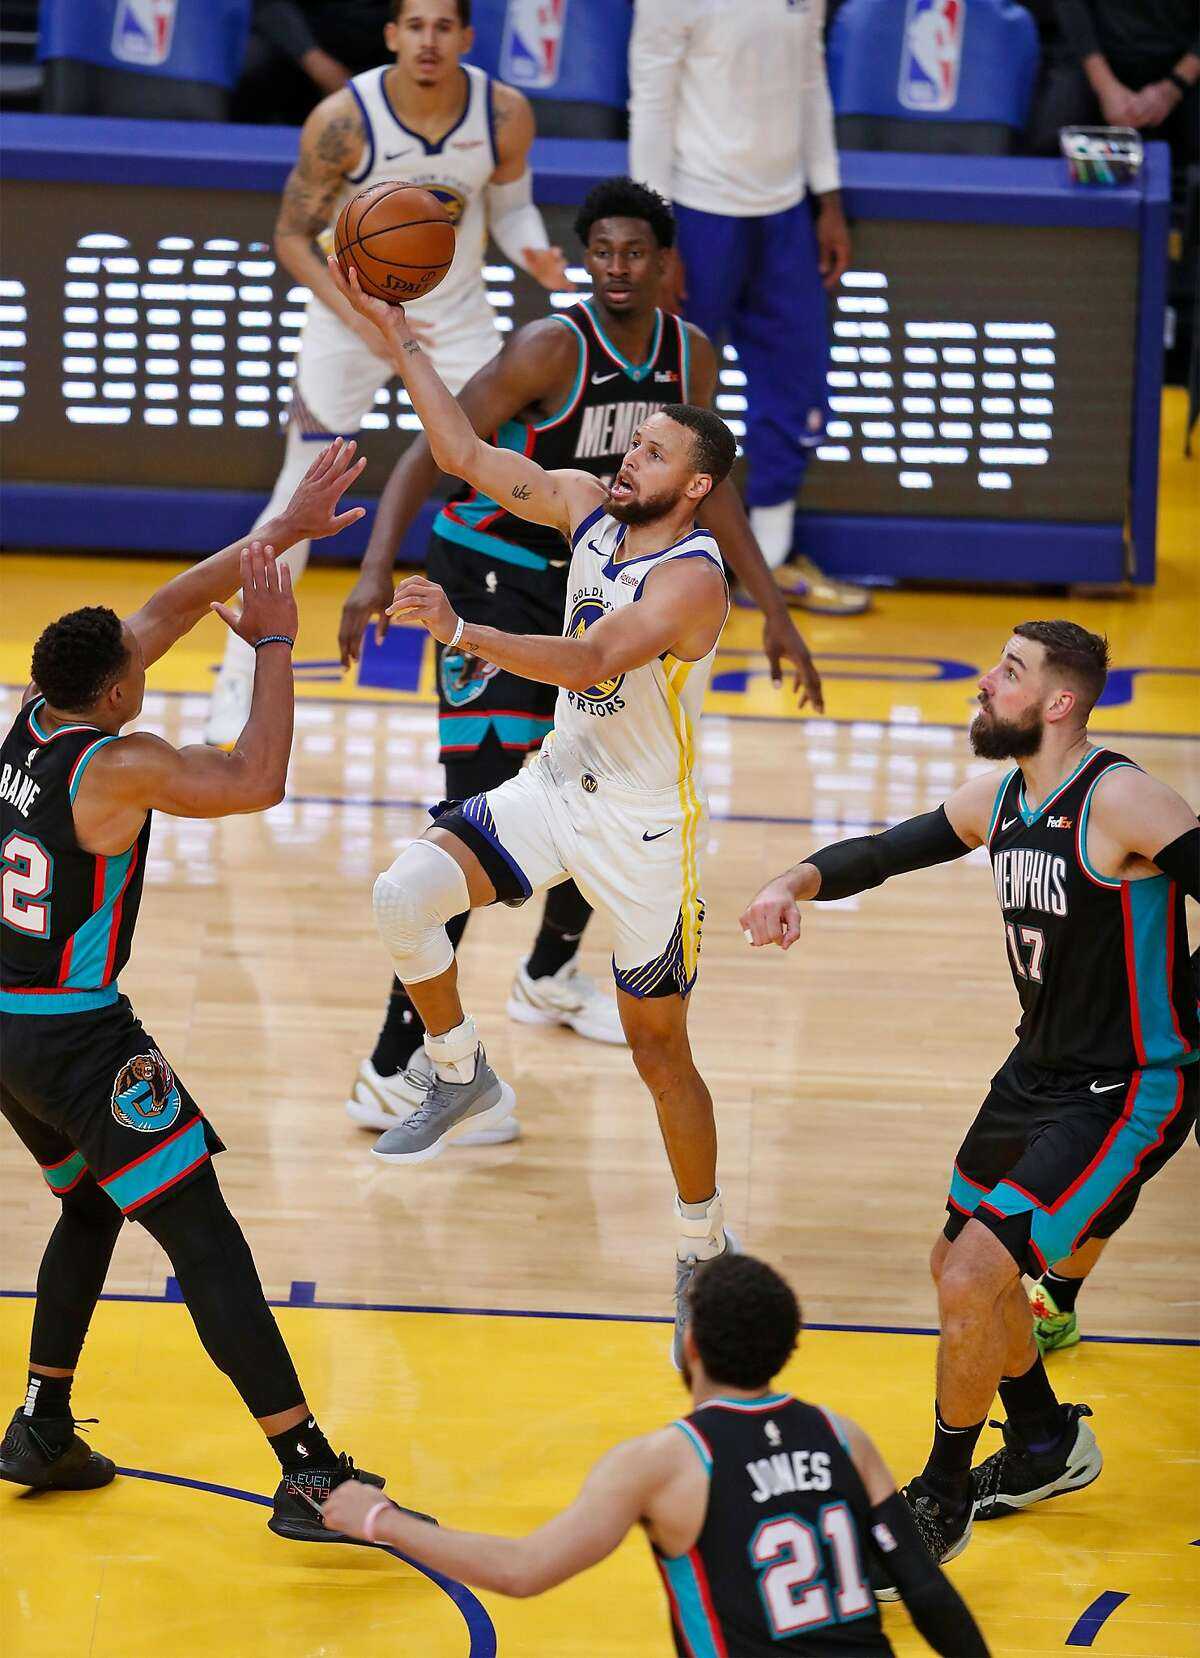 Golden State Warriors' Stephen Curry scores between four Memphis Grizzlies in 4th quarter of Warriors' 113-101 win during NBA game at Chase Center in San Francisco, Calif., on Sunday, May 16, 2021.